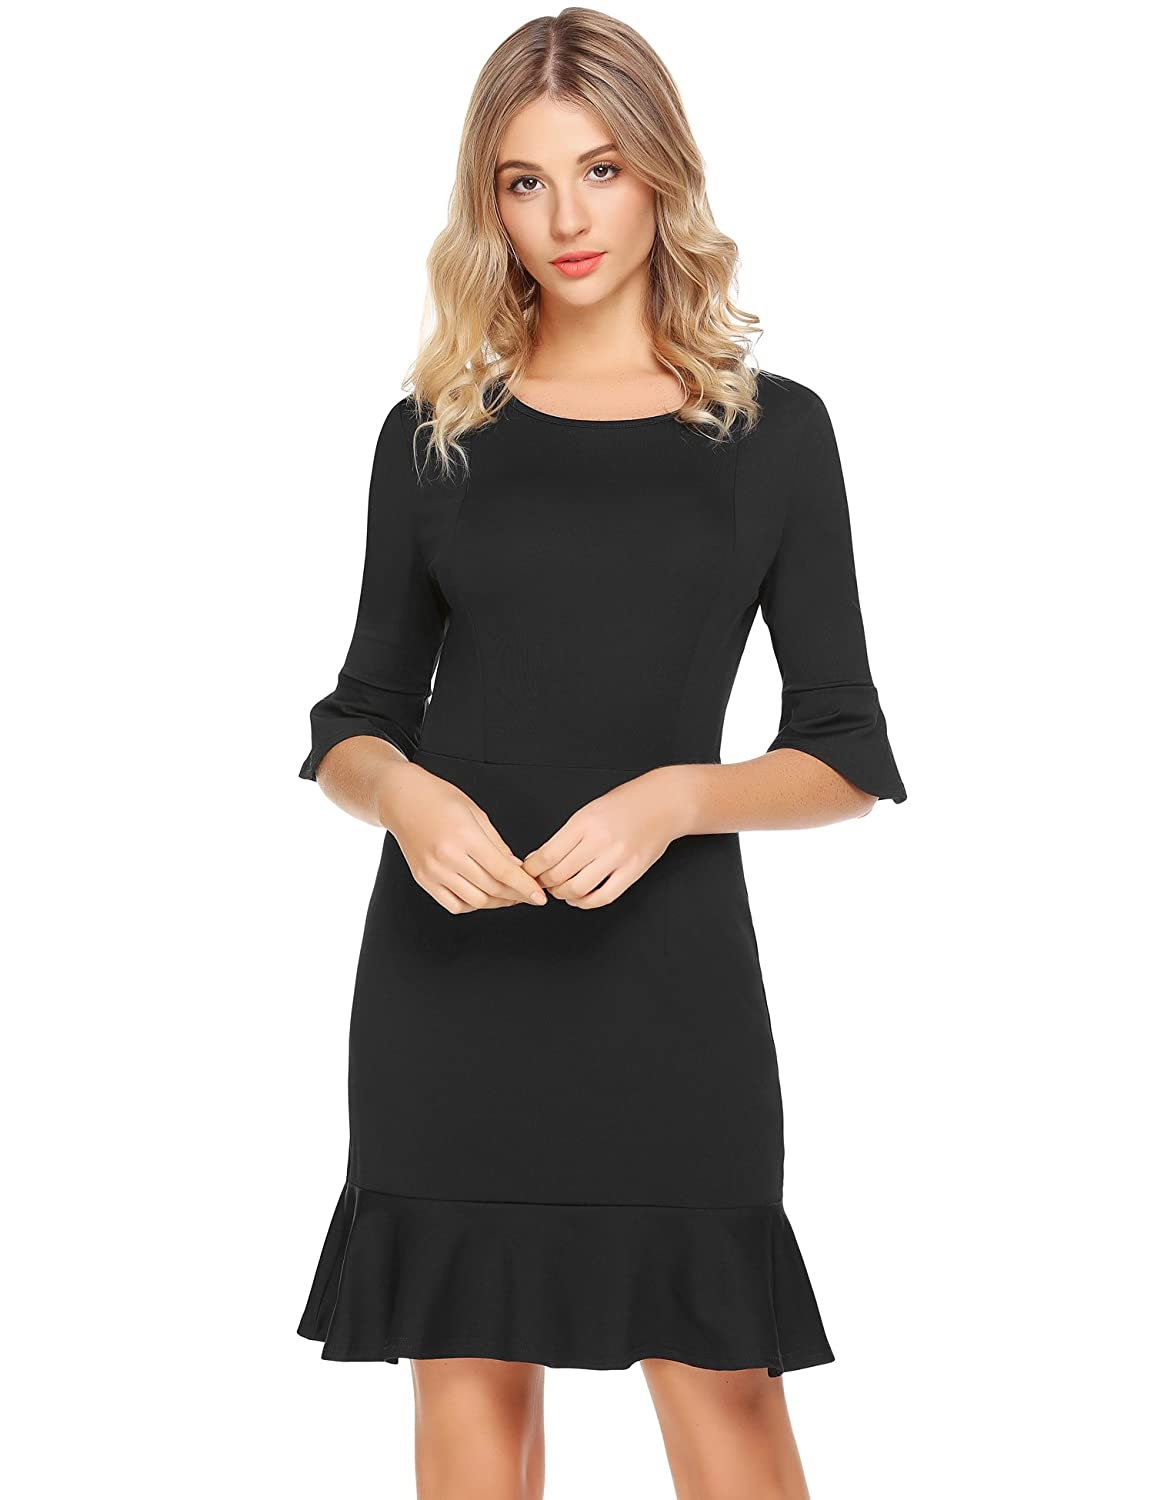 6090382d1866 ELESOL Womens Elegant 3/4 Bell Sleeves Work Party Cocktail Sheath Fishtail  Dress at Amazon Women's Clothing store: